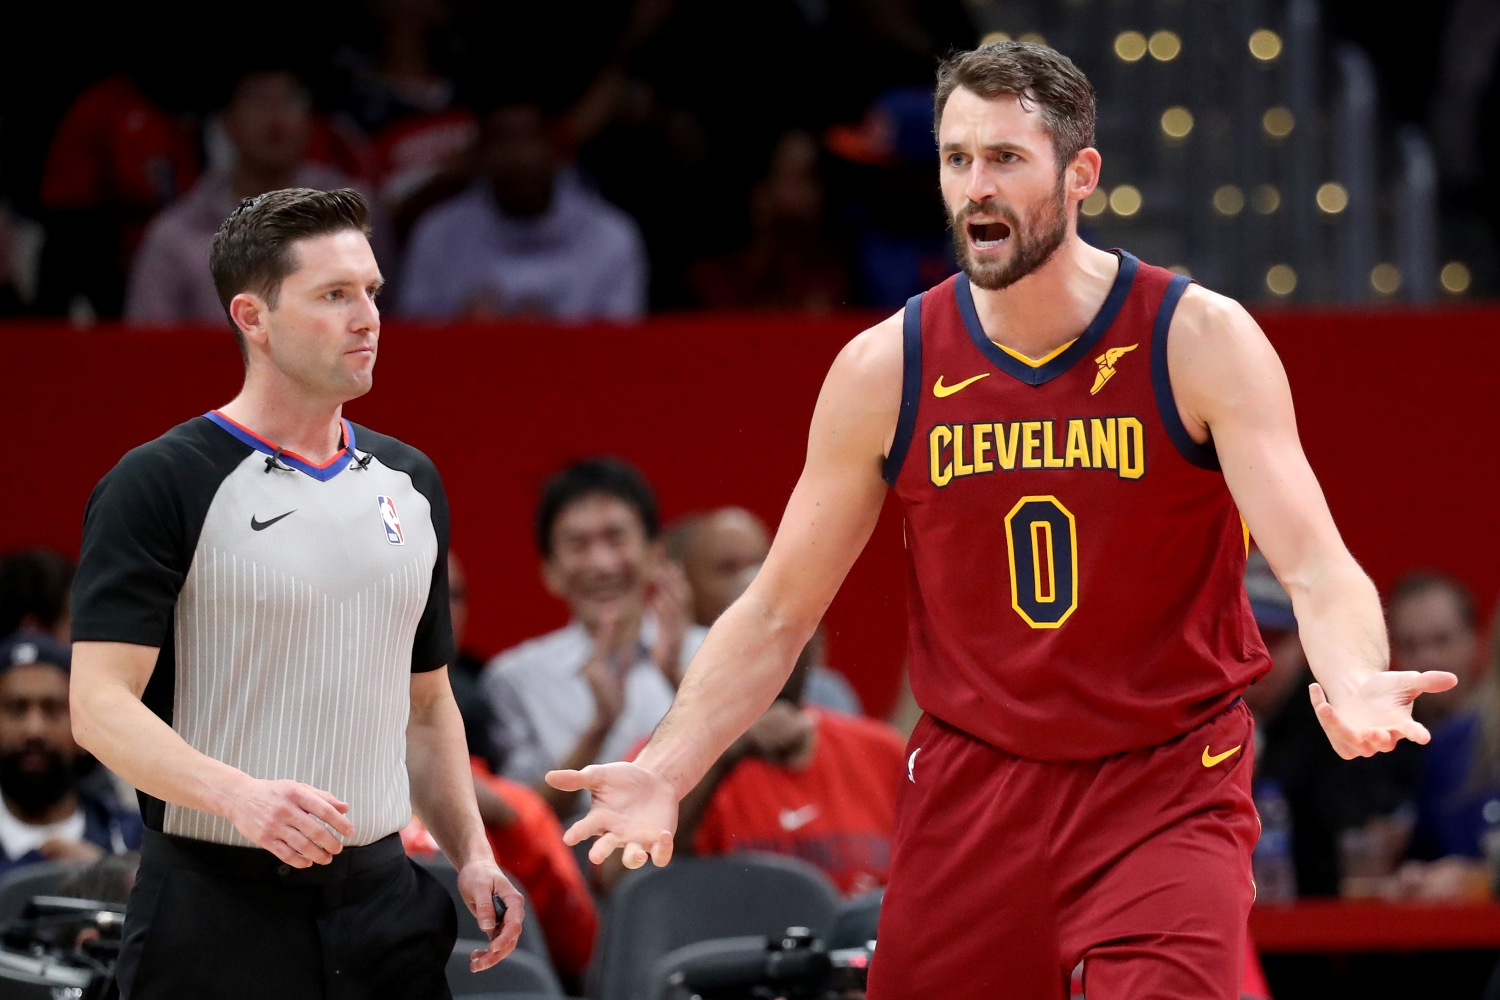 Cleveland Cavaliers forward Kevin Love argues a call with a referee.